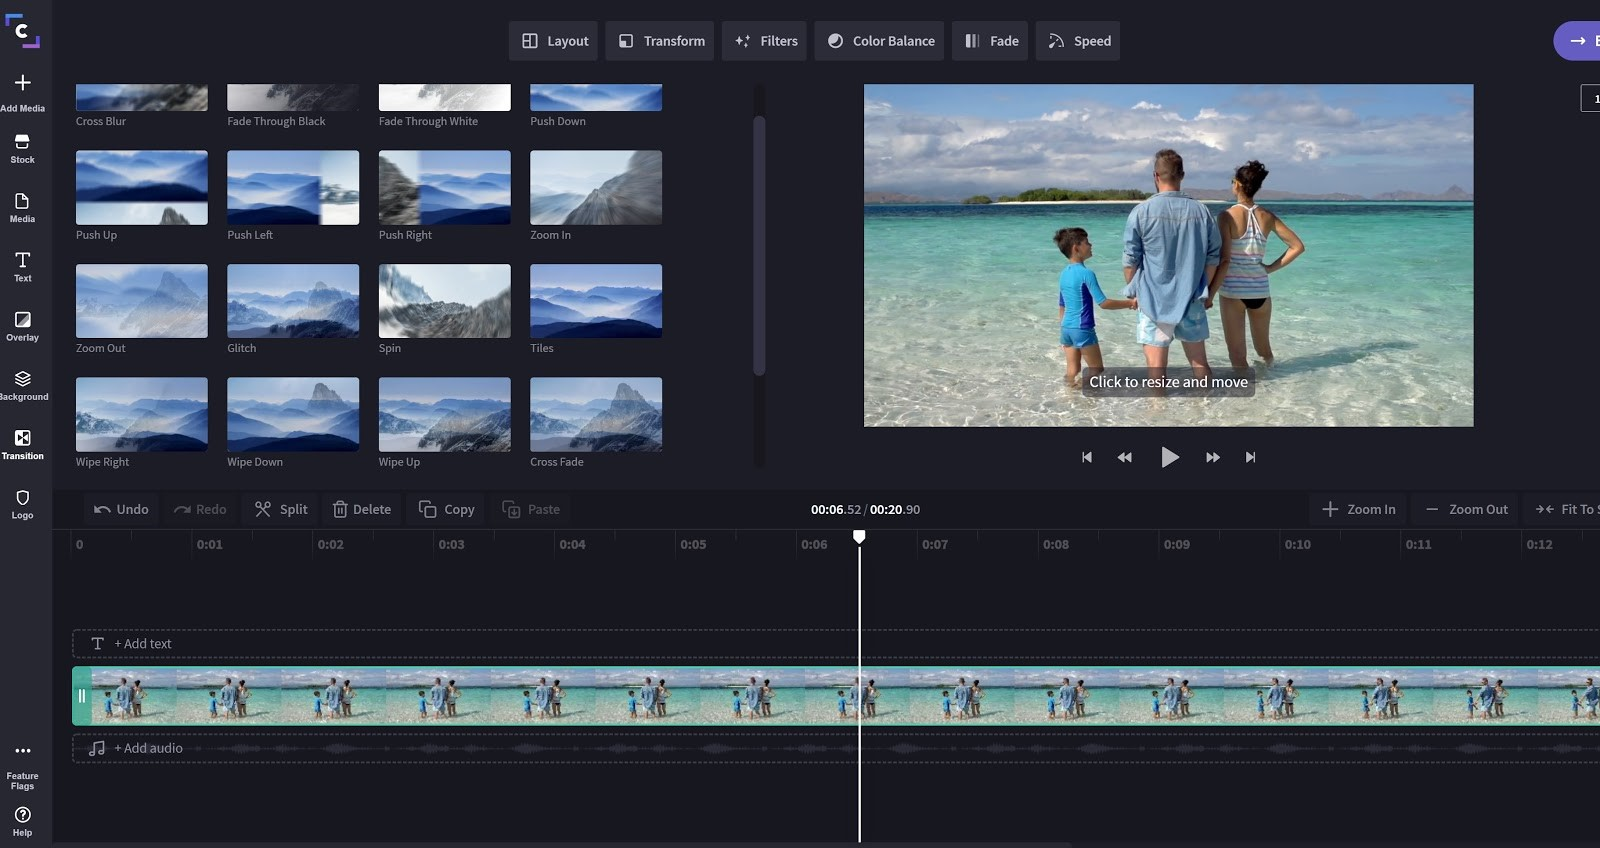 Clipchamp video editing software interface with timeline